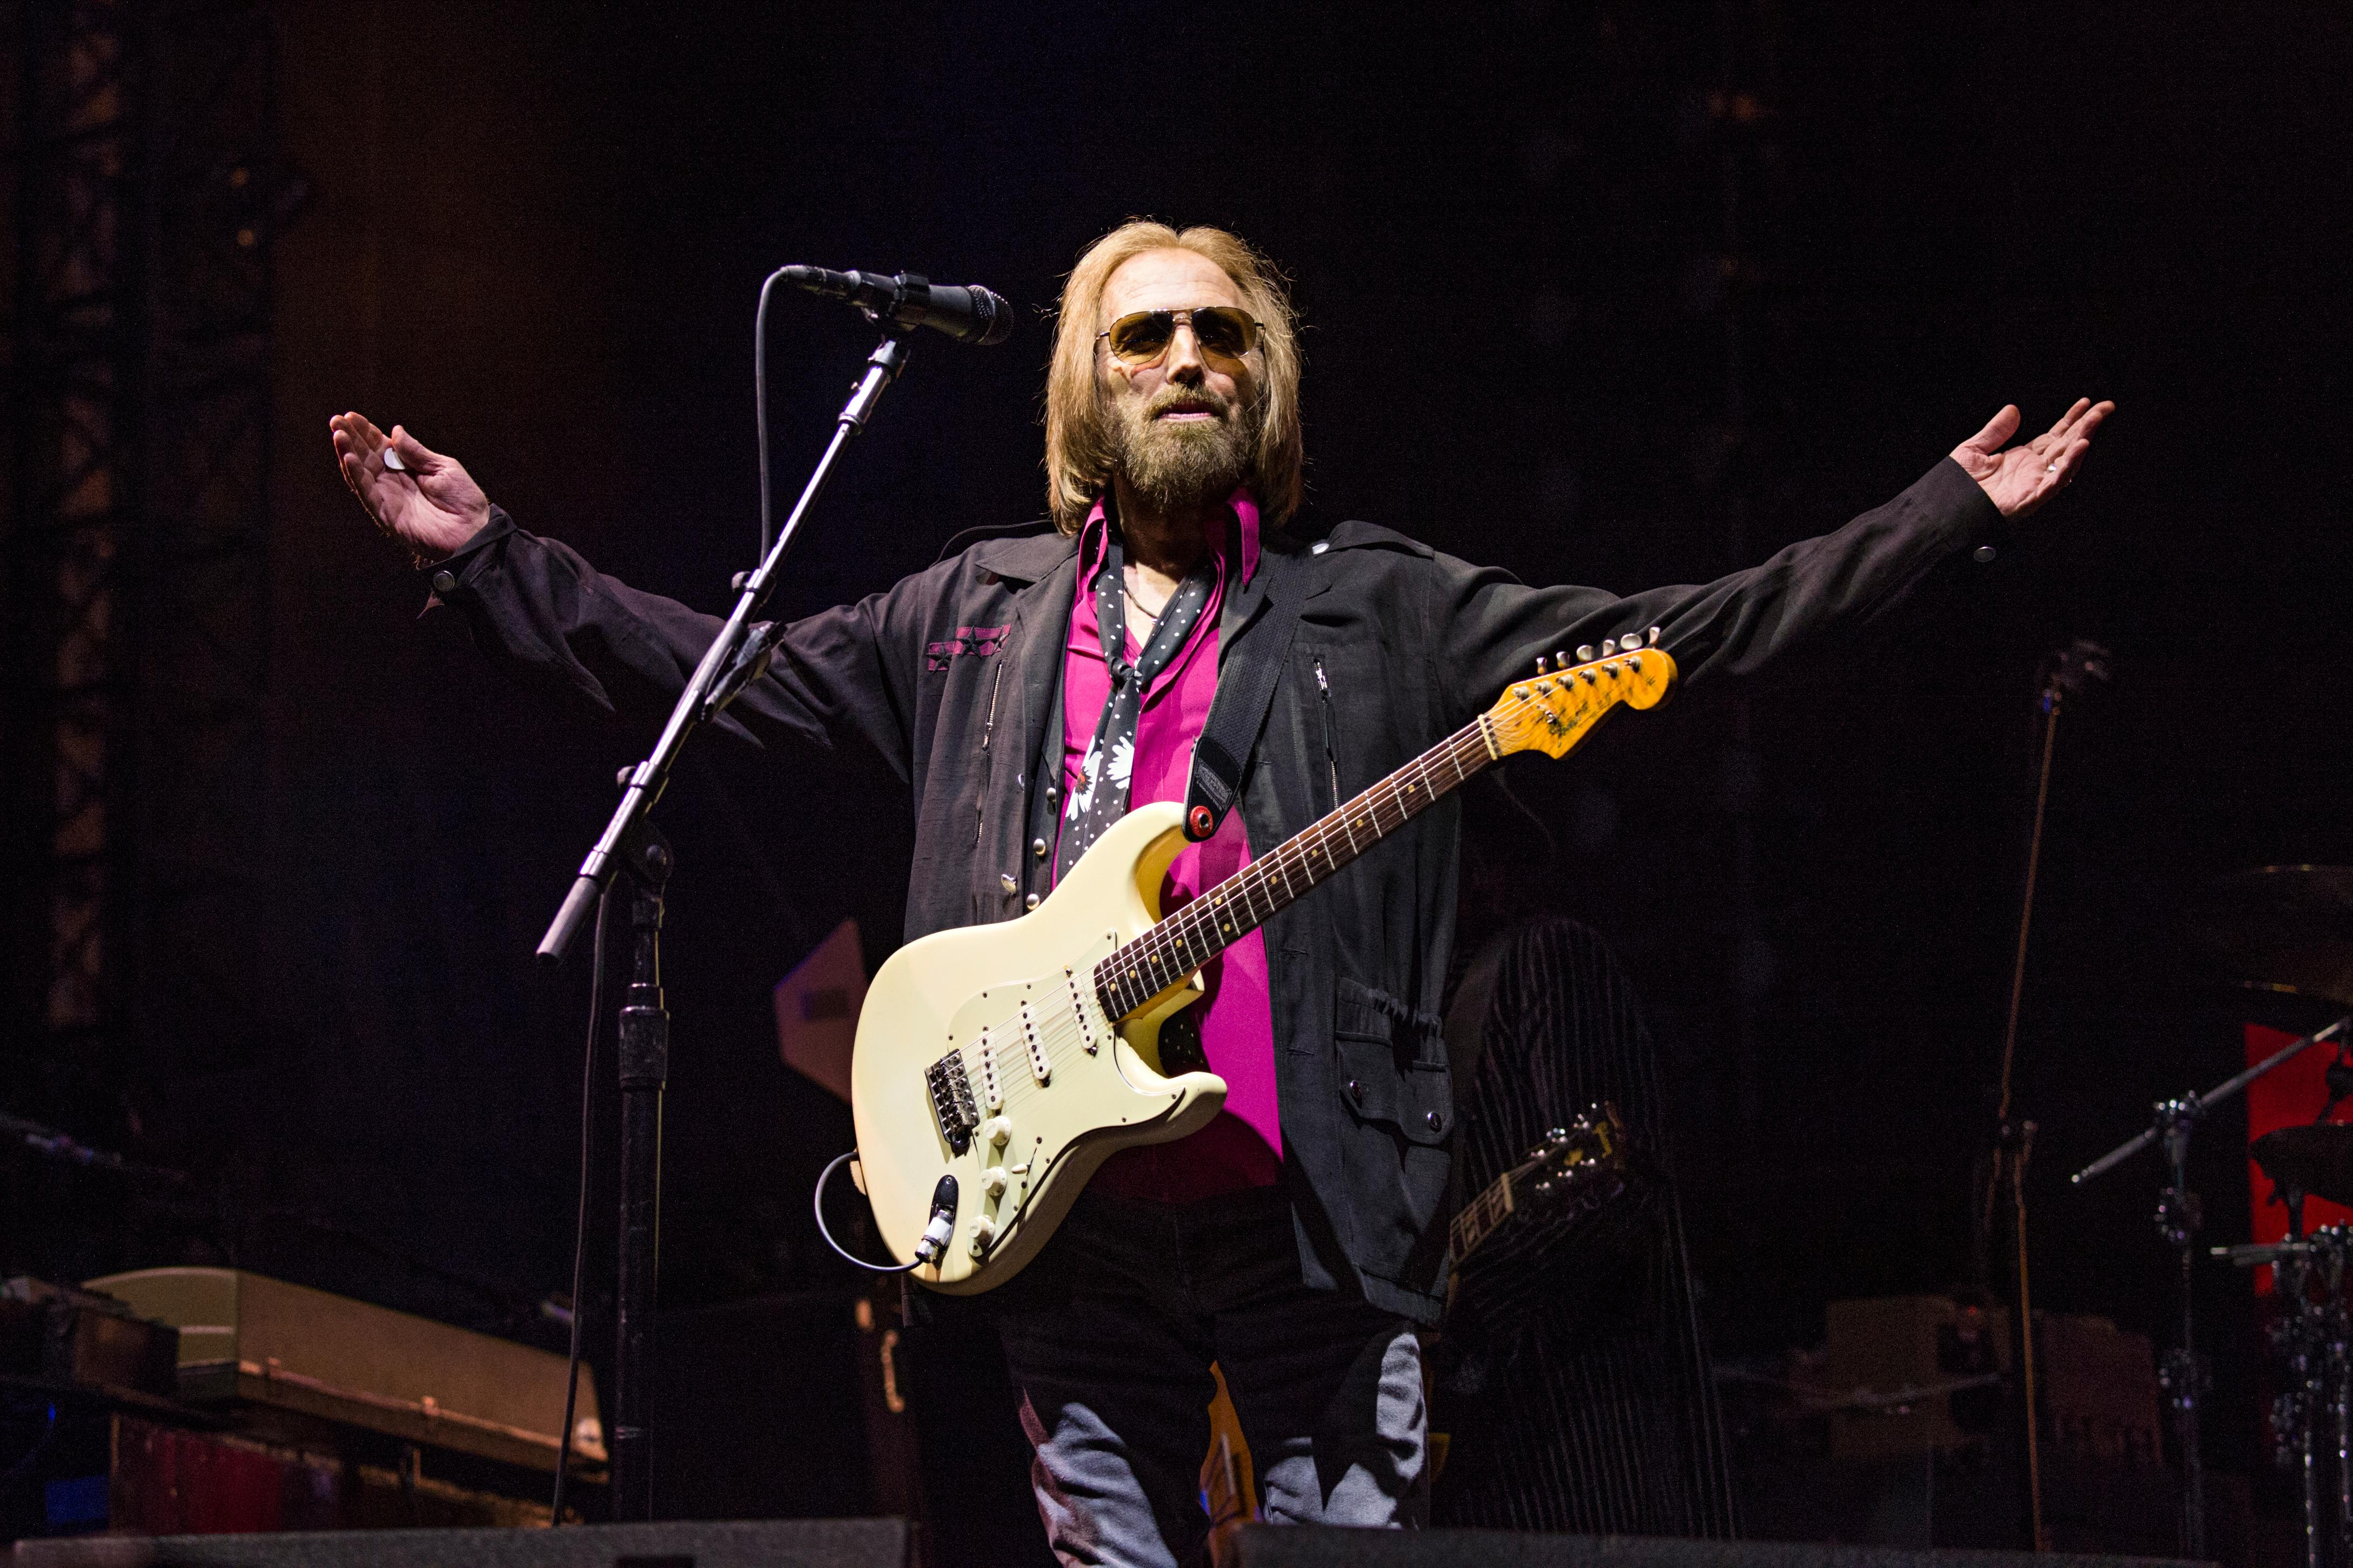 "FILE - In this Sept. 17, 2017 file photo, Tom Petty of Tom Petty and the Heartbreakers appears at KAABOO 2017 in San Diego, Calif. A spokesman for the Los Angeles Police Department says it has no information on the well-being of Tom Petty and its spokespeople did not provide info CBS News used to report the rocker had died. News outlets reported Monday, Oct. 2, that Petty was dead at age 66. CBS did not cite a source in its story, but tweeted that LAPD confirmed Petty's death. CBS now says he is ""clinging to life."" (Photo by Amy Harris/Invision/AP, File)"